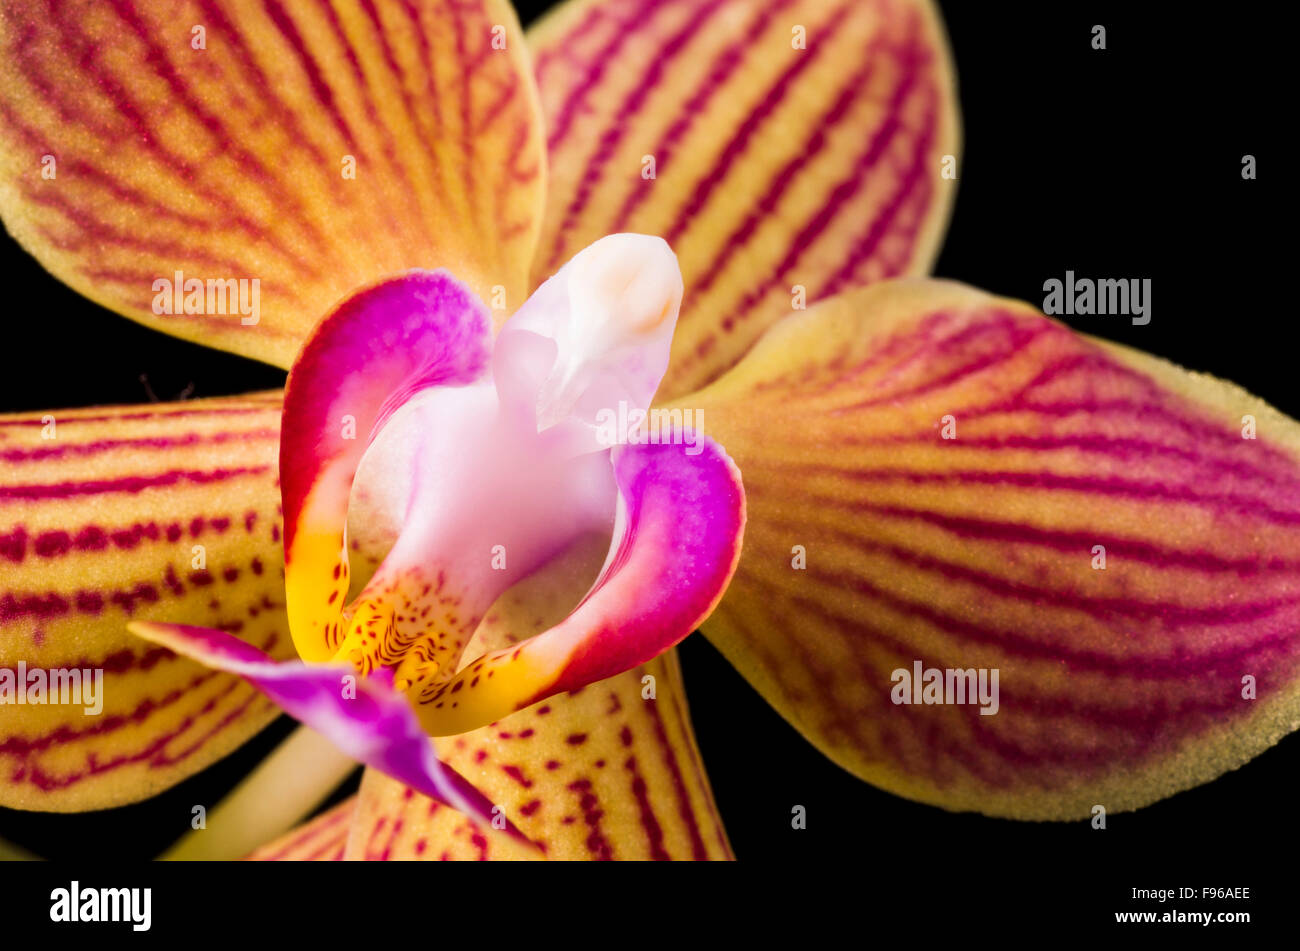 Close up of an Orchid flower, Orchidaceae, with a black background. - Stock Image